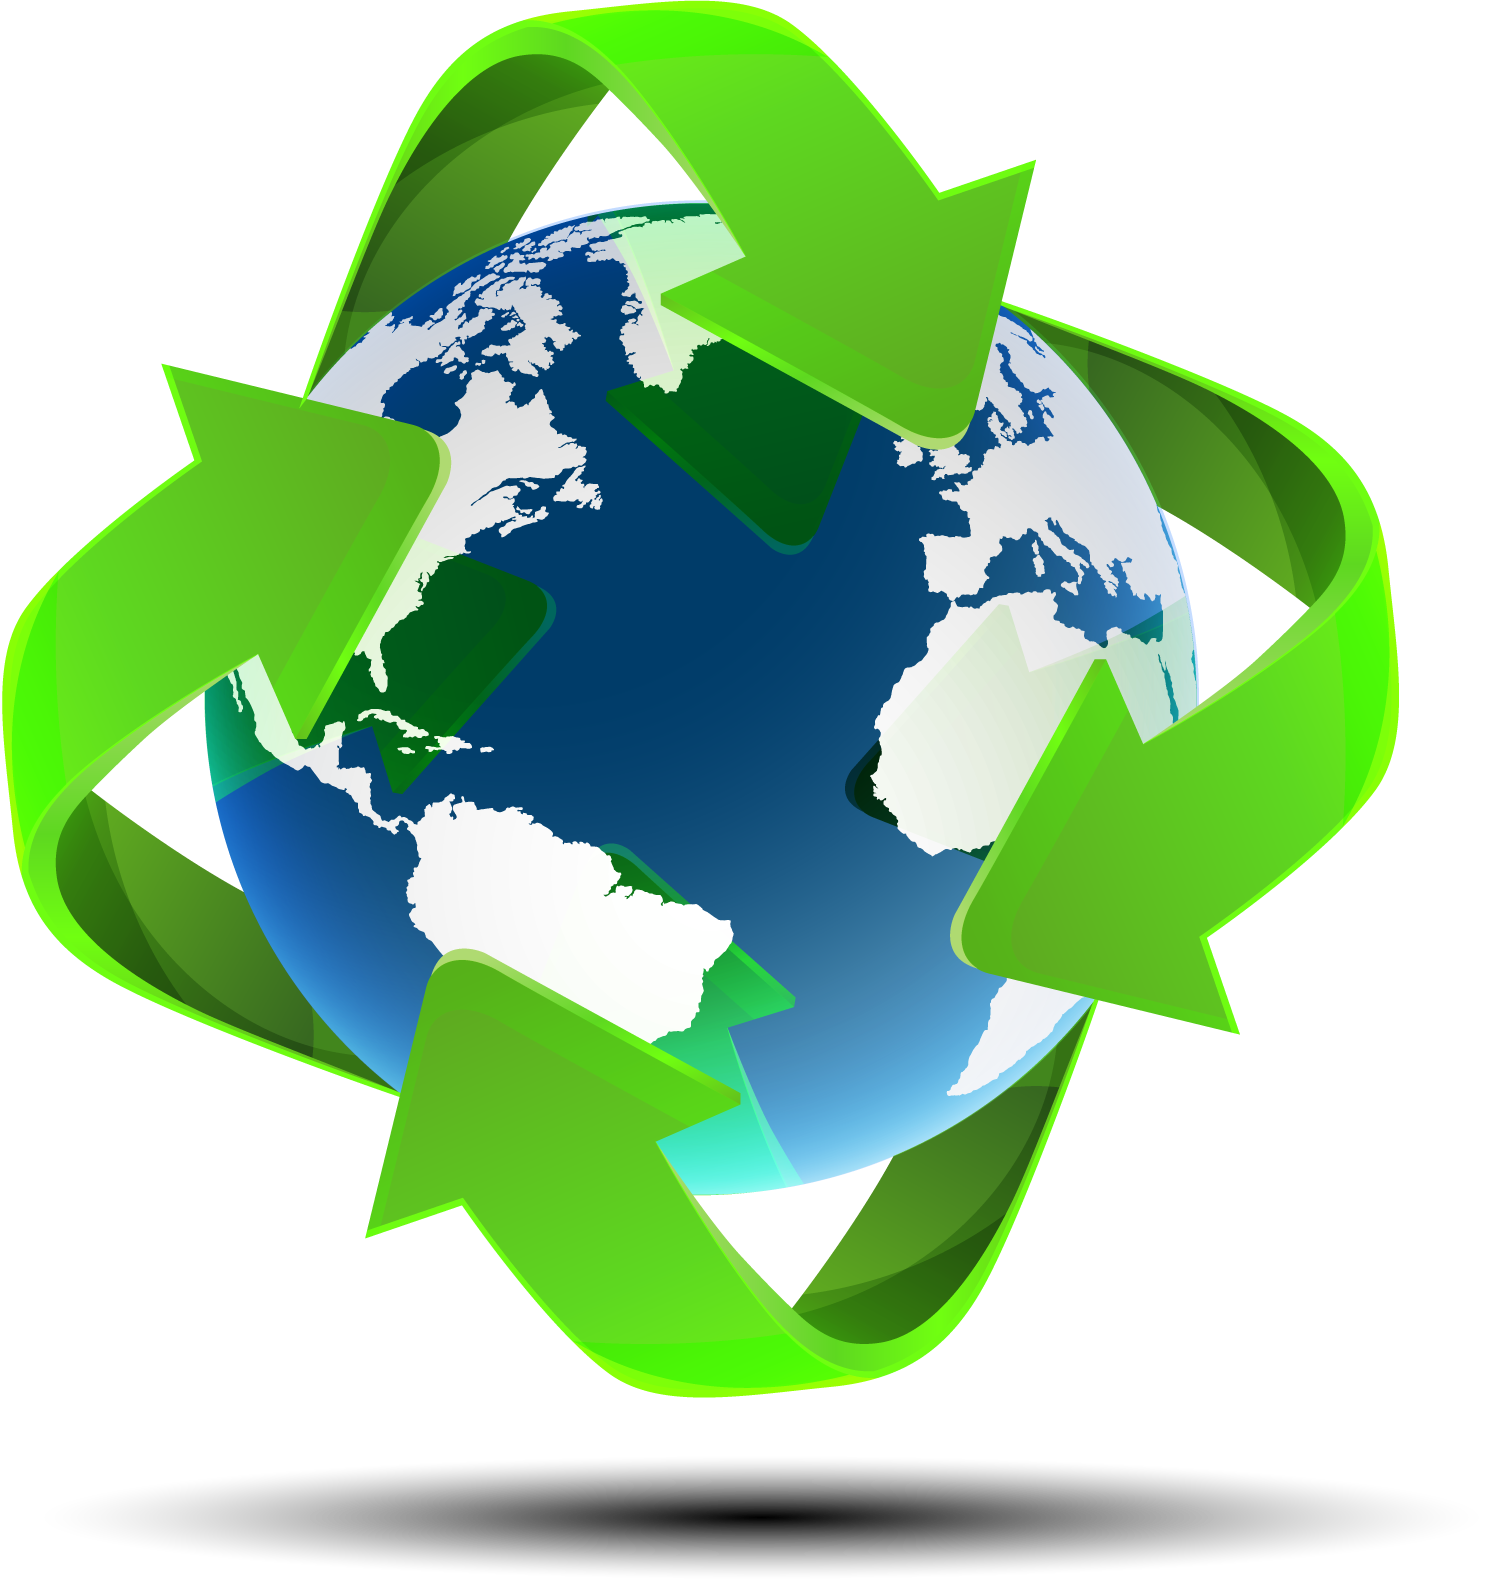 Map Globe Vector World Recycle Earth PNG Image